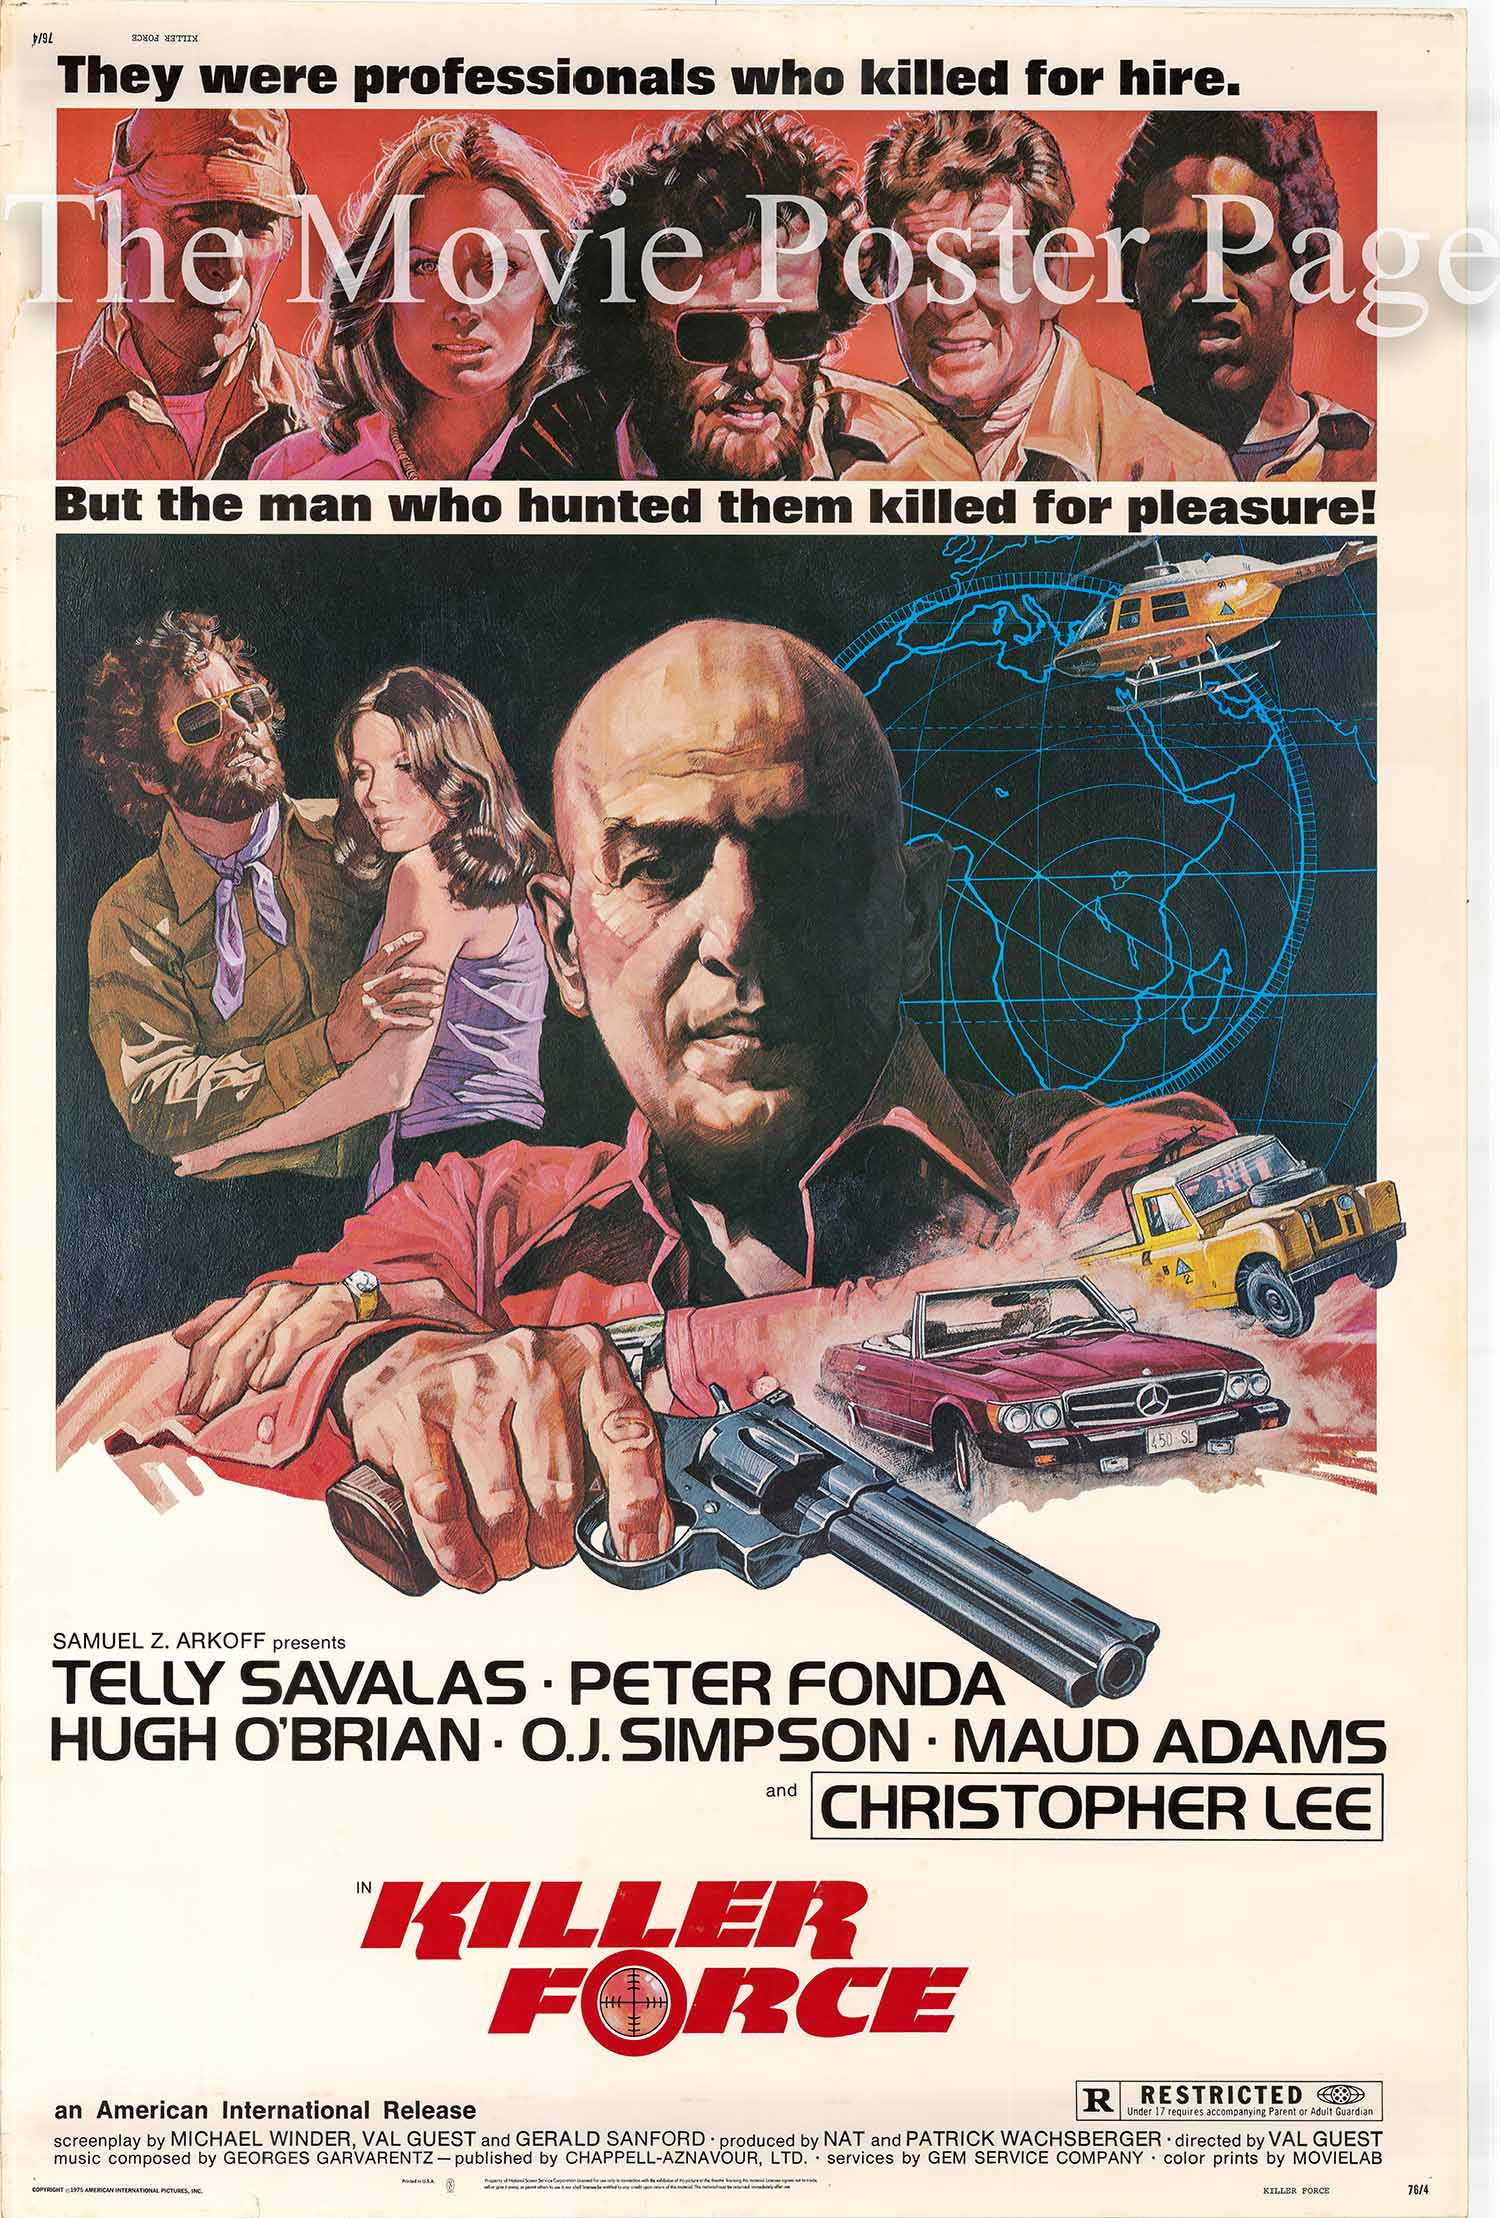 Pictured is a US 40x60 poster made to promote the 1976 Val Guest film Killer Force starring Telly Savalas.